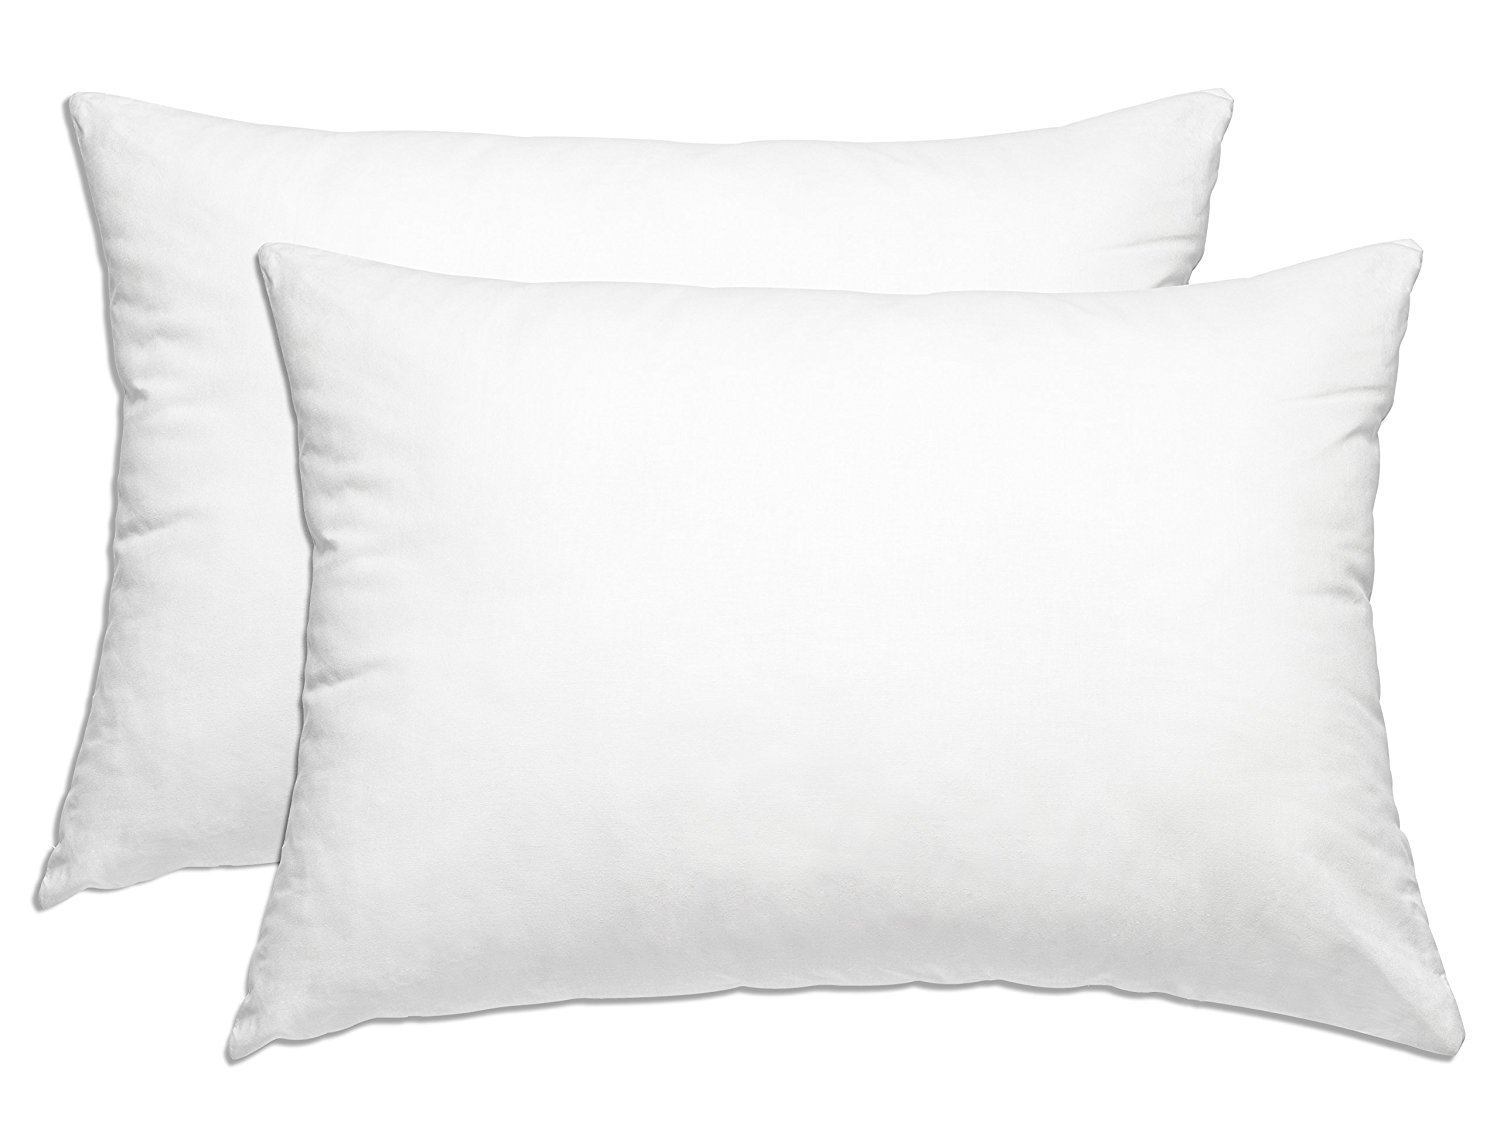 Smarthome Bedding 2 Pack Hotel Collection Plush Pillow